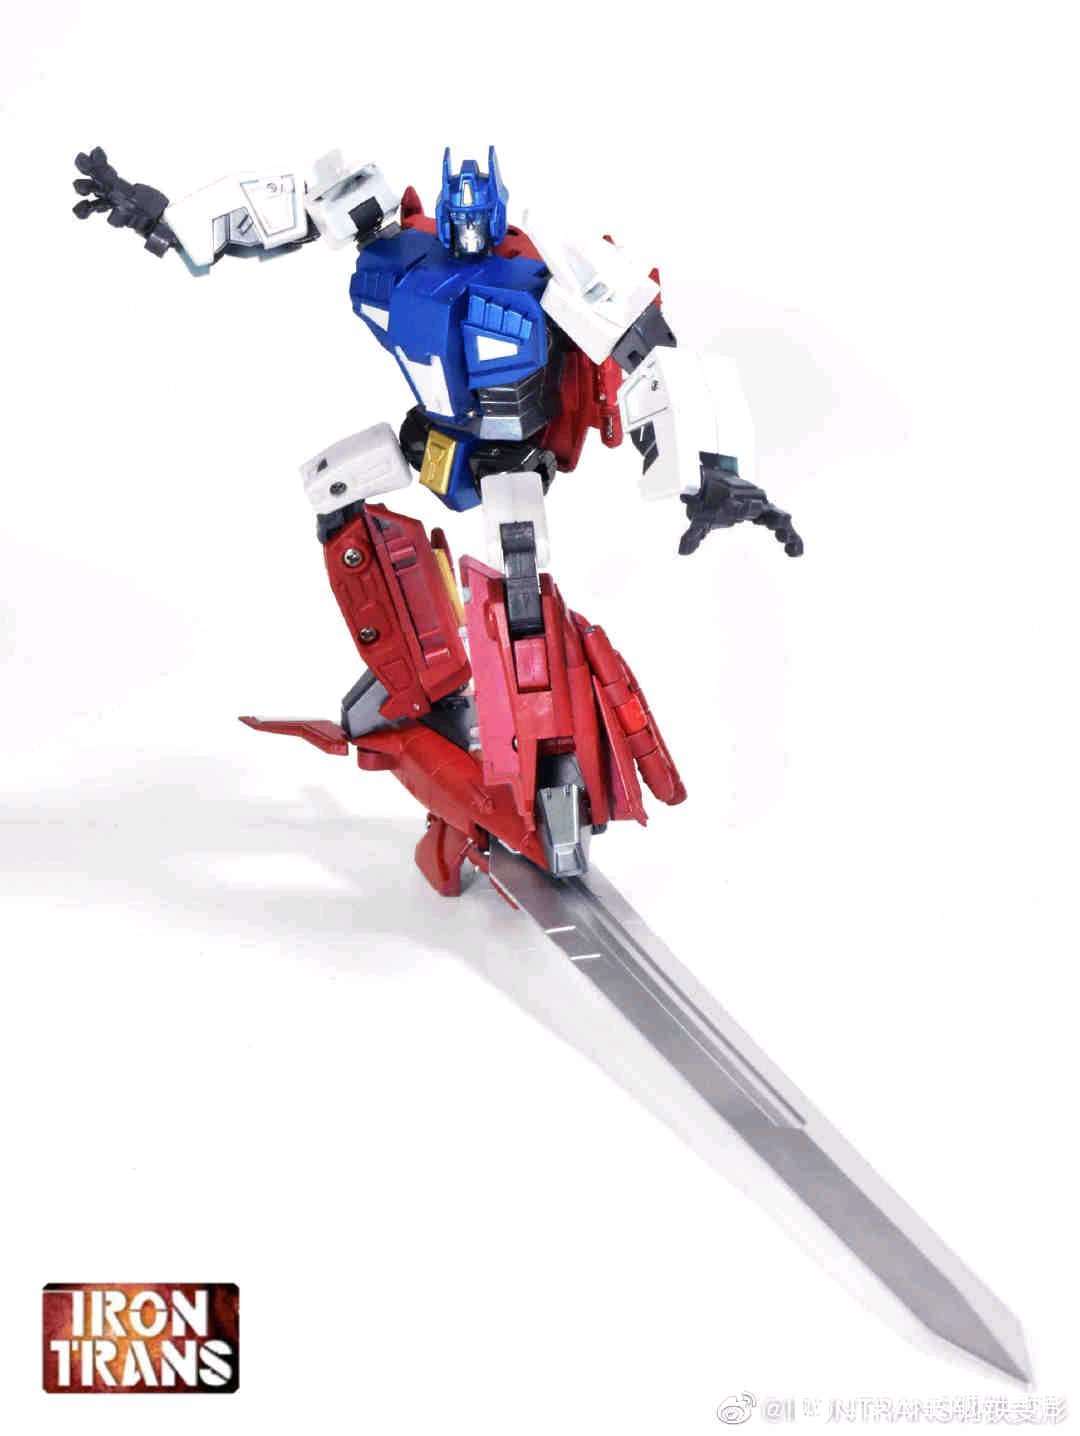 Transformers Irontrans Ir-V01 Star Saber Mp Scale Action Figure Toy In Stock